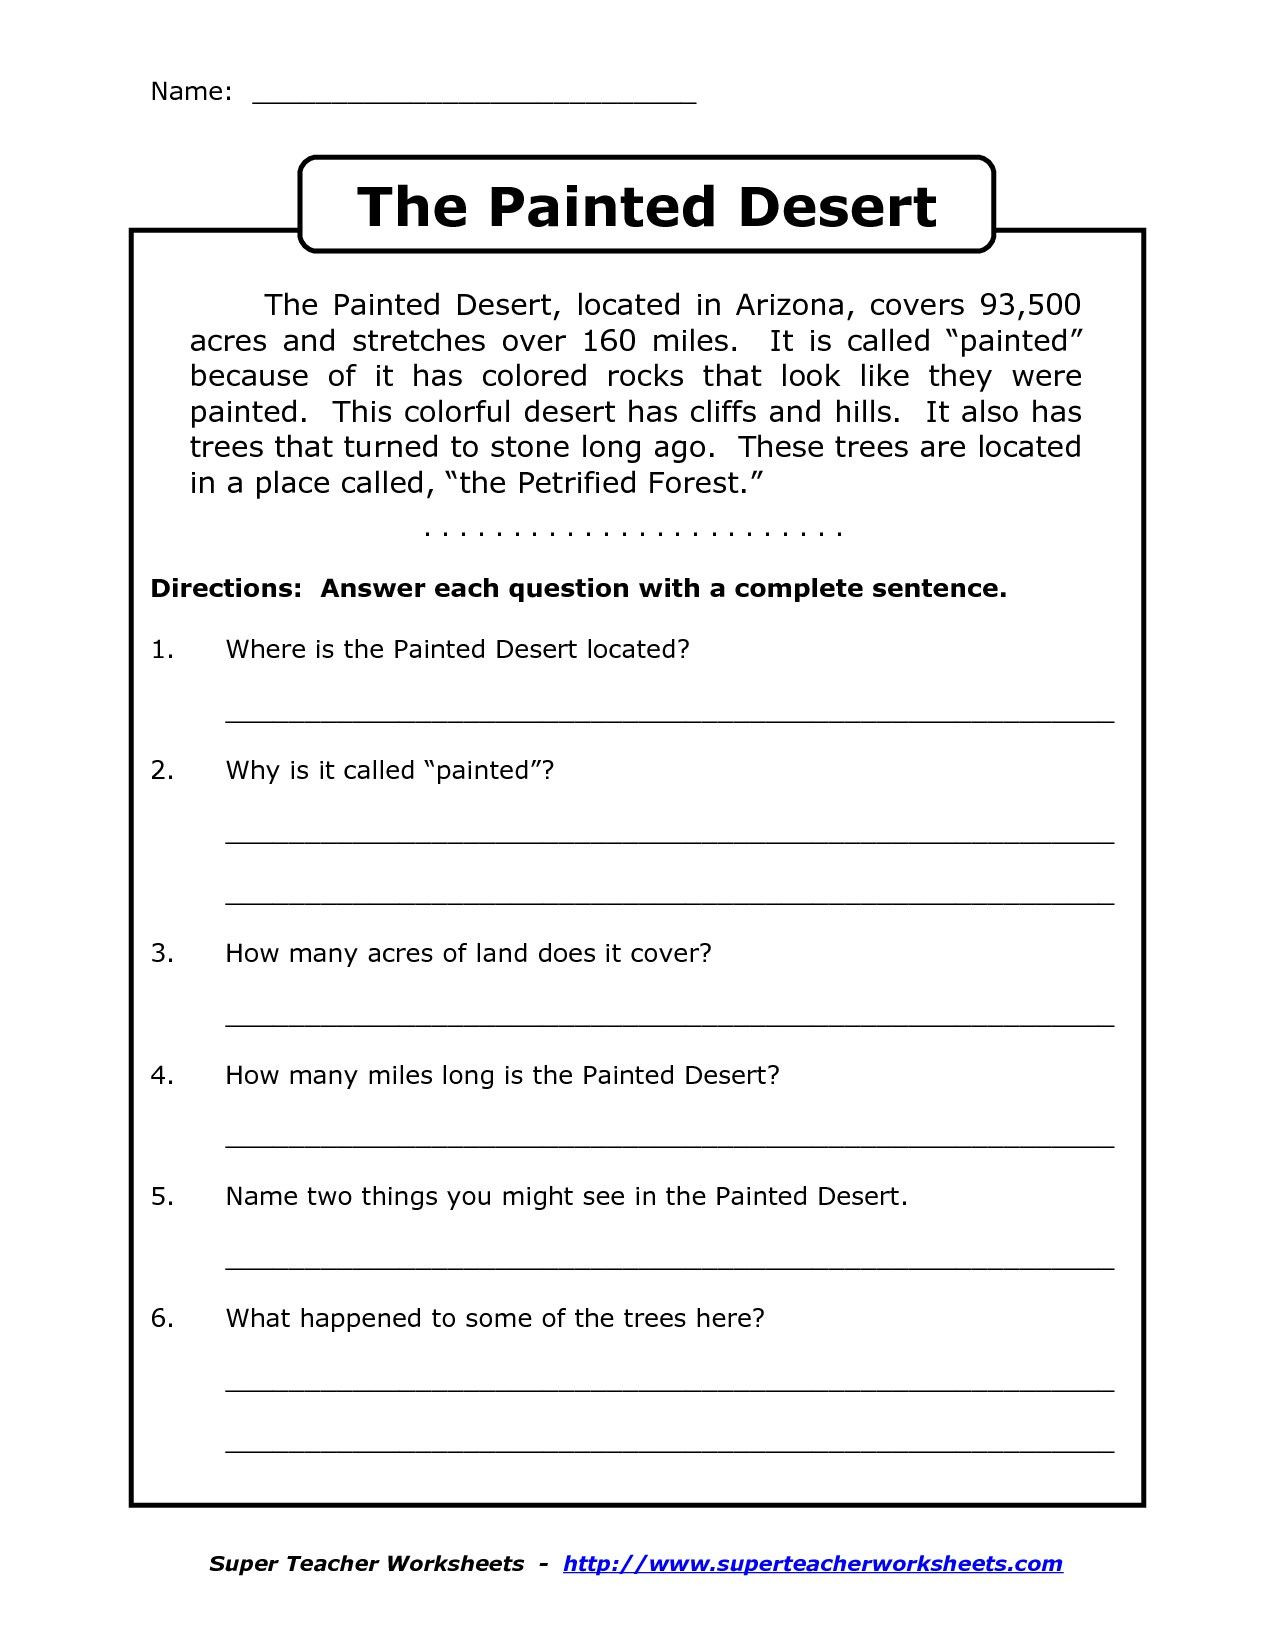 Editing Worksheet 2nd Grade Prehension Worksheet for 1st Grade Y2 P3 the Painted